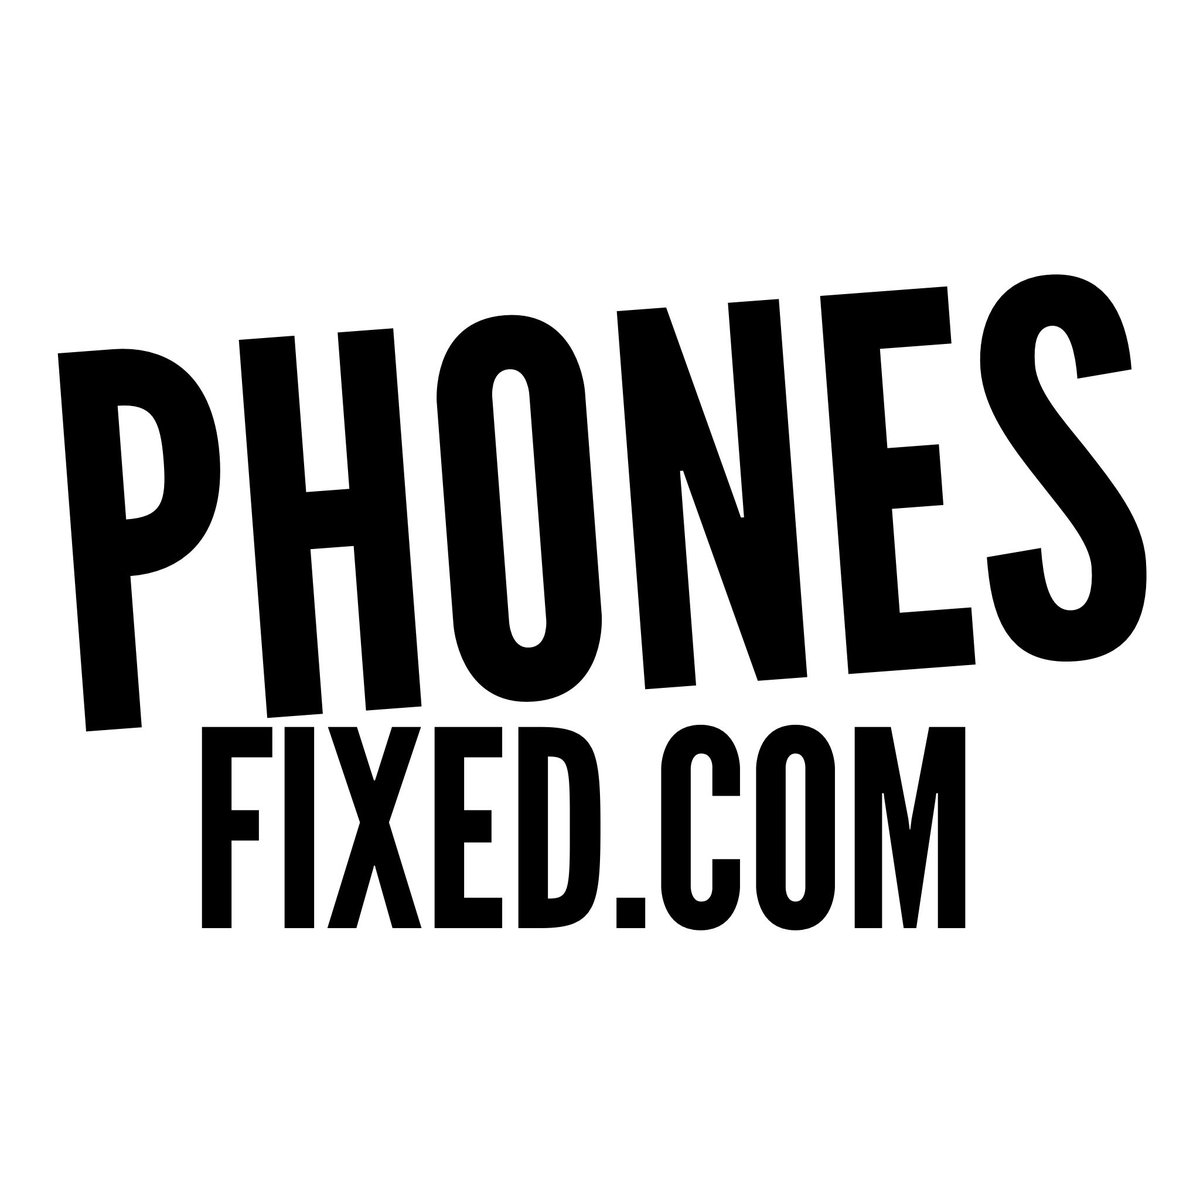 http://PhonesFixed.com Live Domain Name Auction!!! #phones #phone #apple #android #iphone8 #smartphone #iphonex #iphone8plus #tech #iphonese #iphonepic #iphonedaily #iphoneaccessories #iphoneology #iphonecase #phonecases #iphoneshot #iphoneographer #iphonecamera #lovethatpic.twitter.com/v1cK9WhP0N